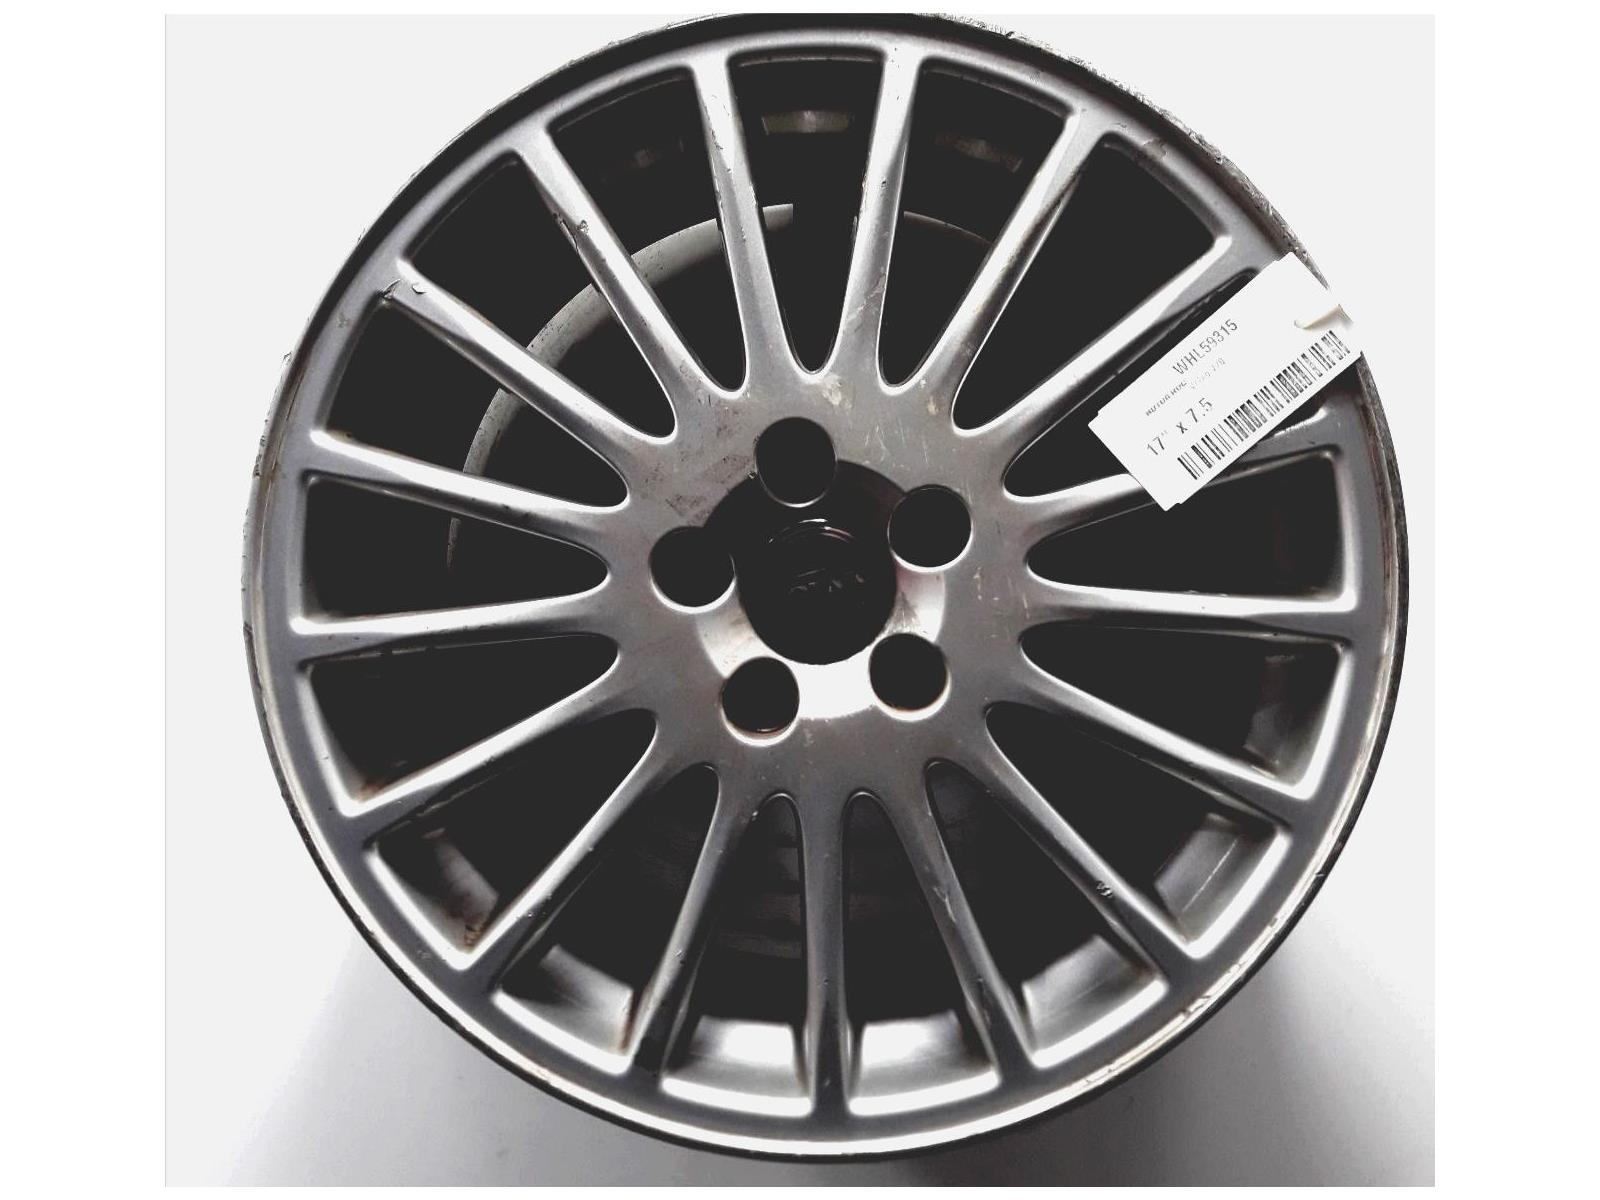 ALLOY WHEEL Volvo V70 17 Inch Alloy Wheel Rim - WHL59315